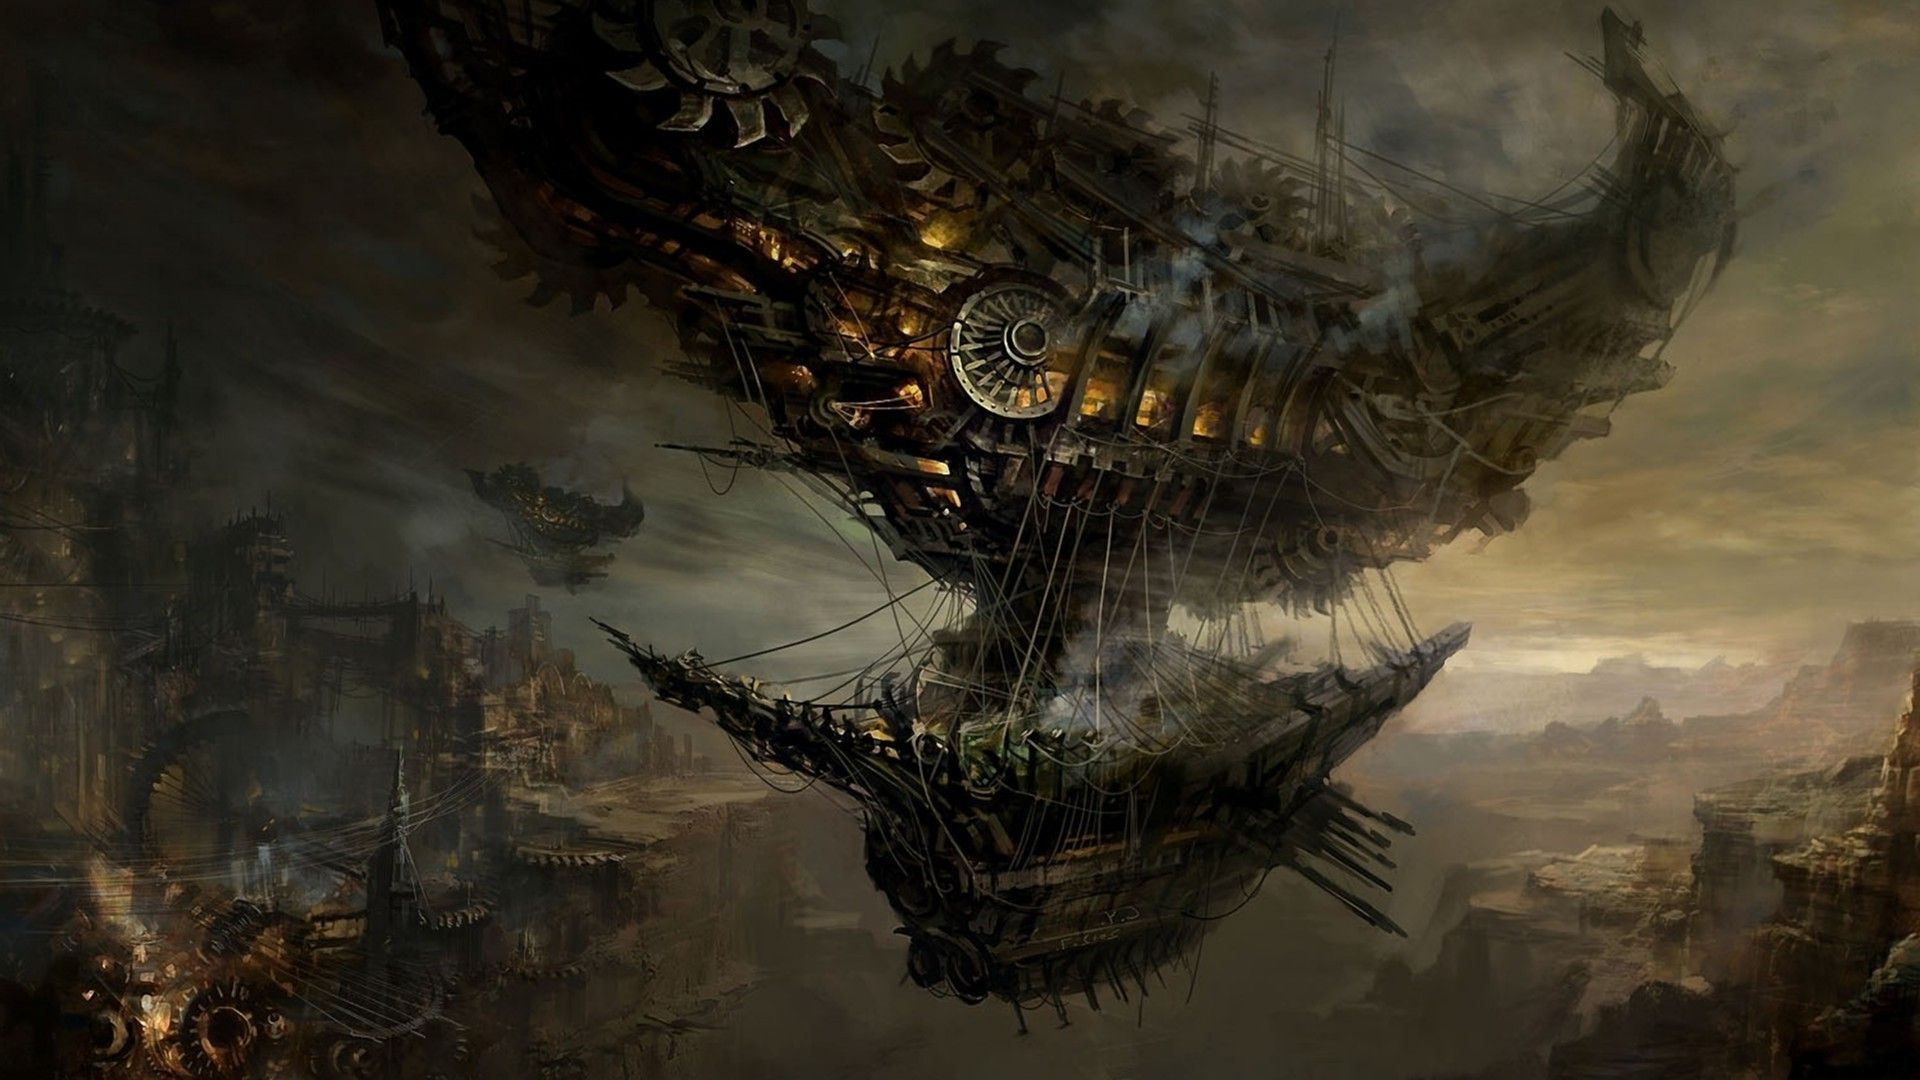 steampunk wallpaper wallpapers 1920x1080 1920x1080